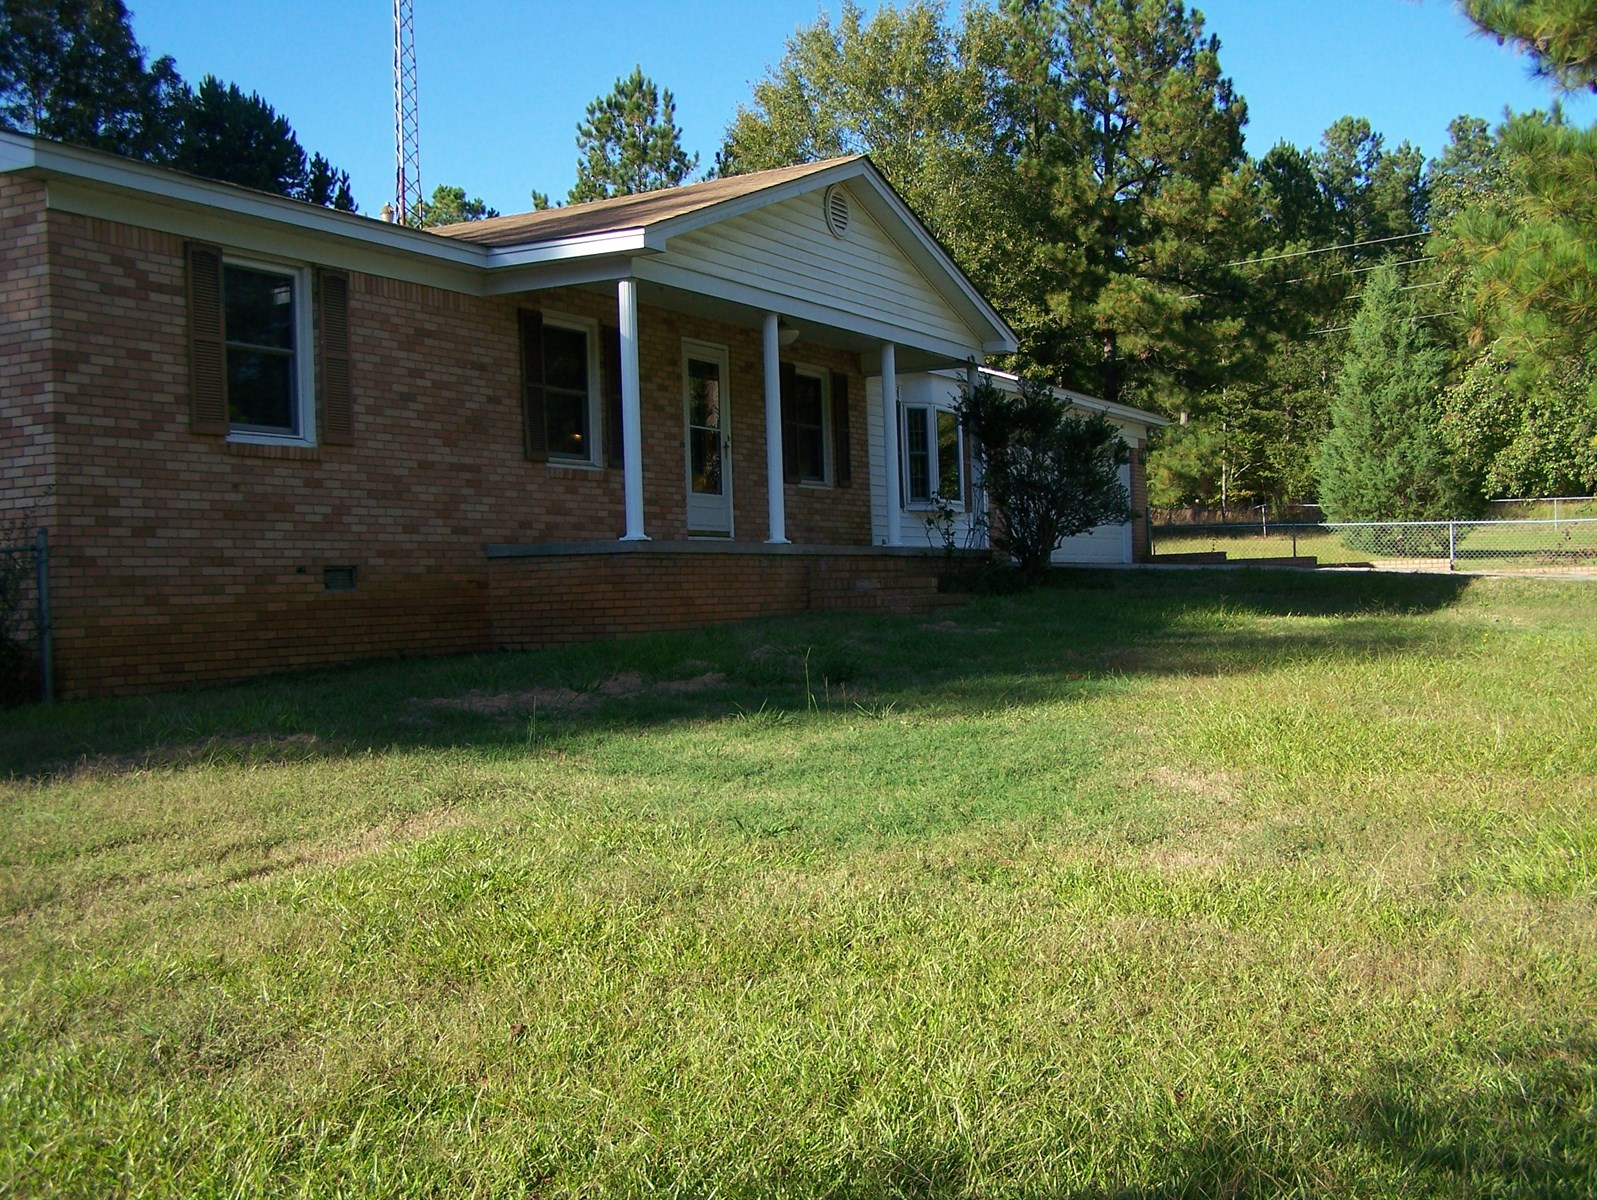 BRICK RANCH 3 BEDROOM/1-1/2 BATH HOME, WINNSBORO, S.C.